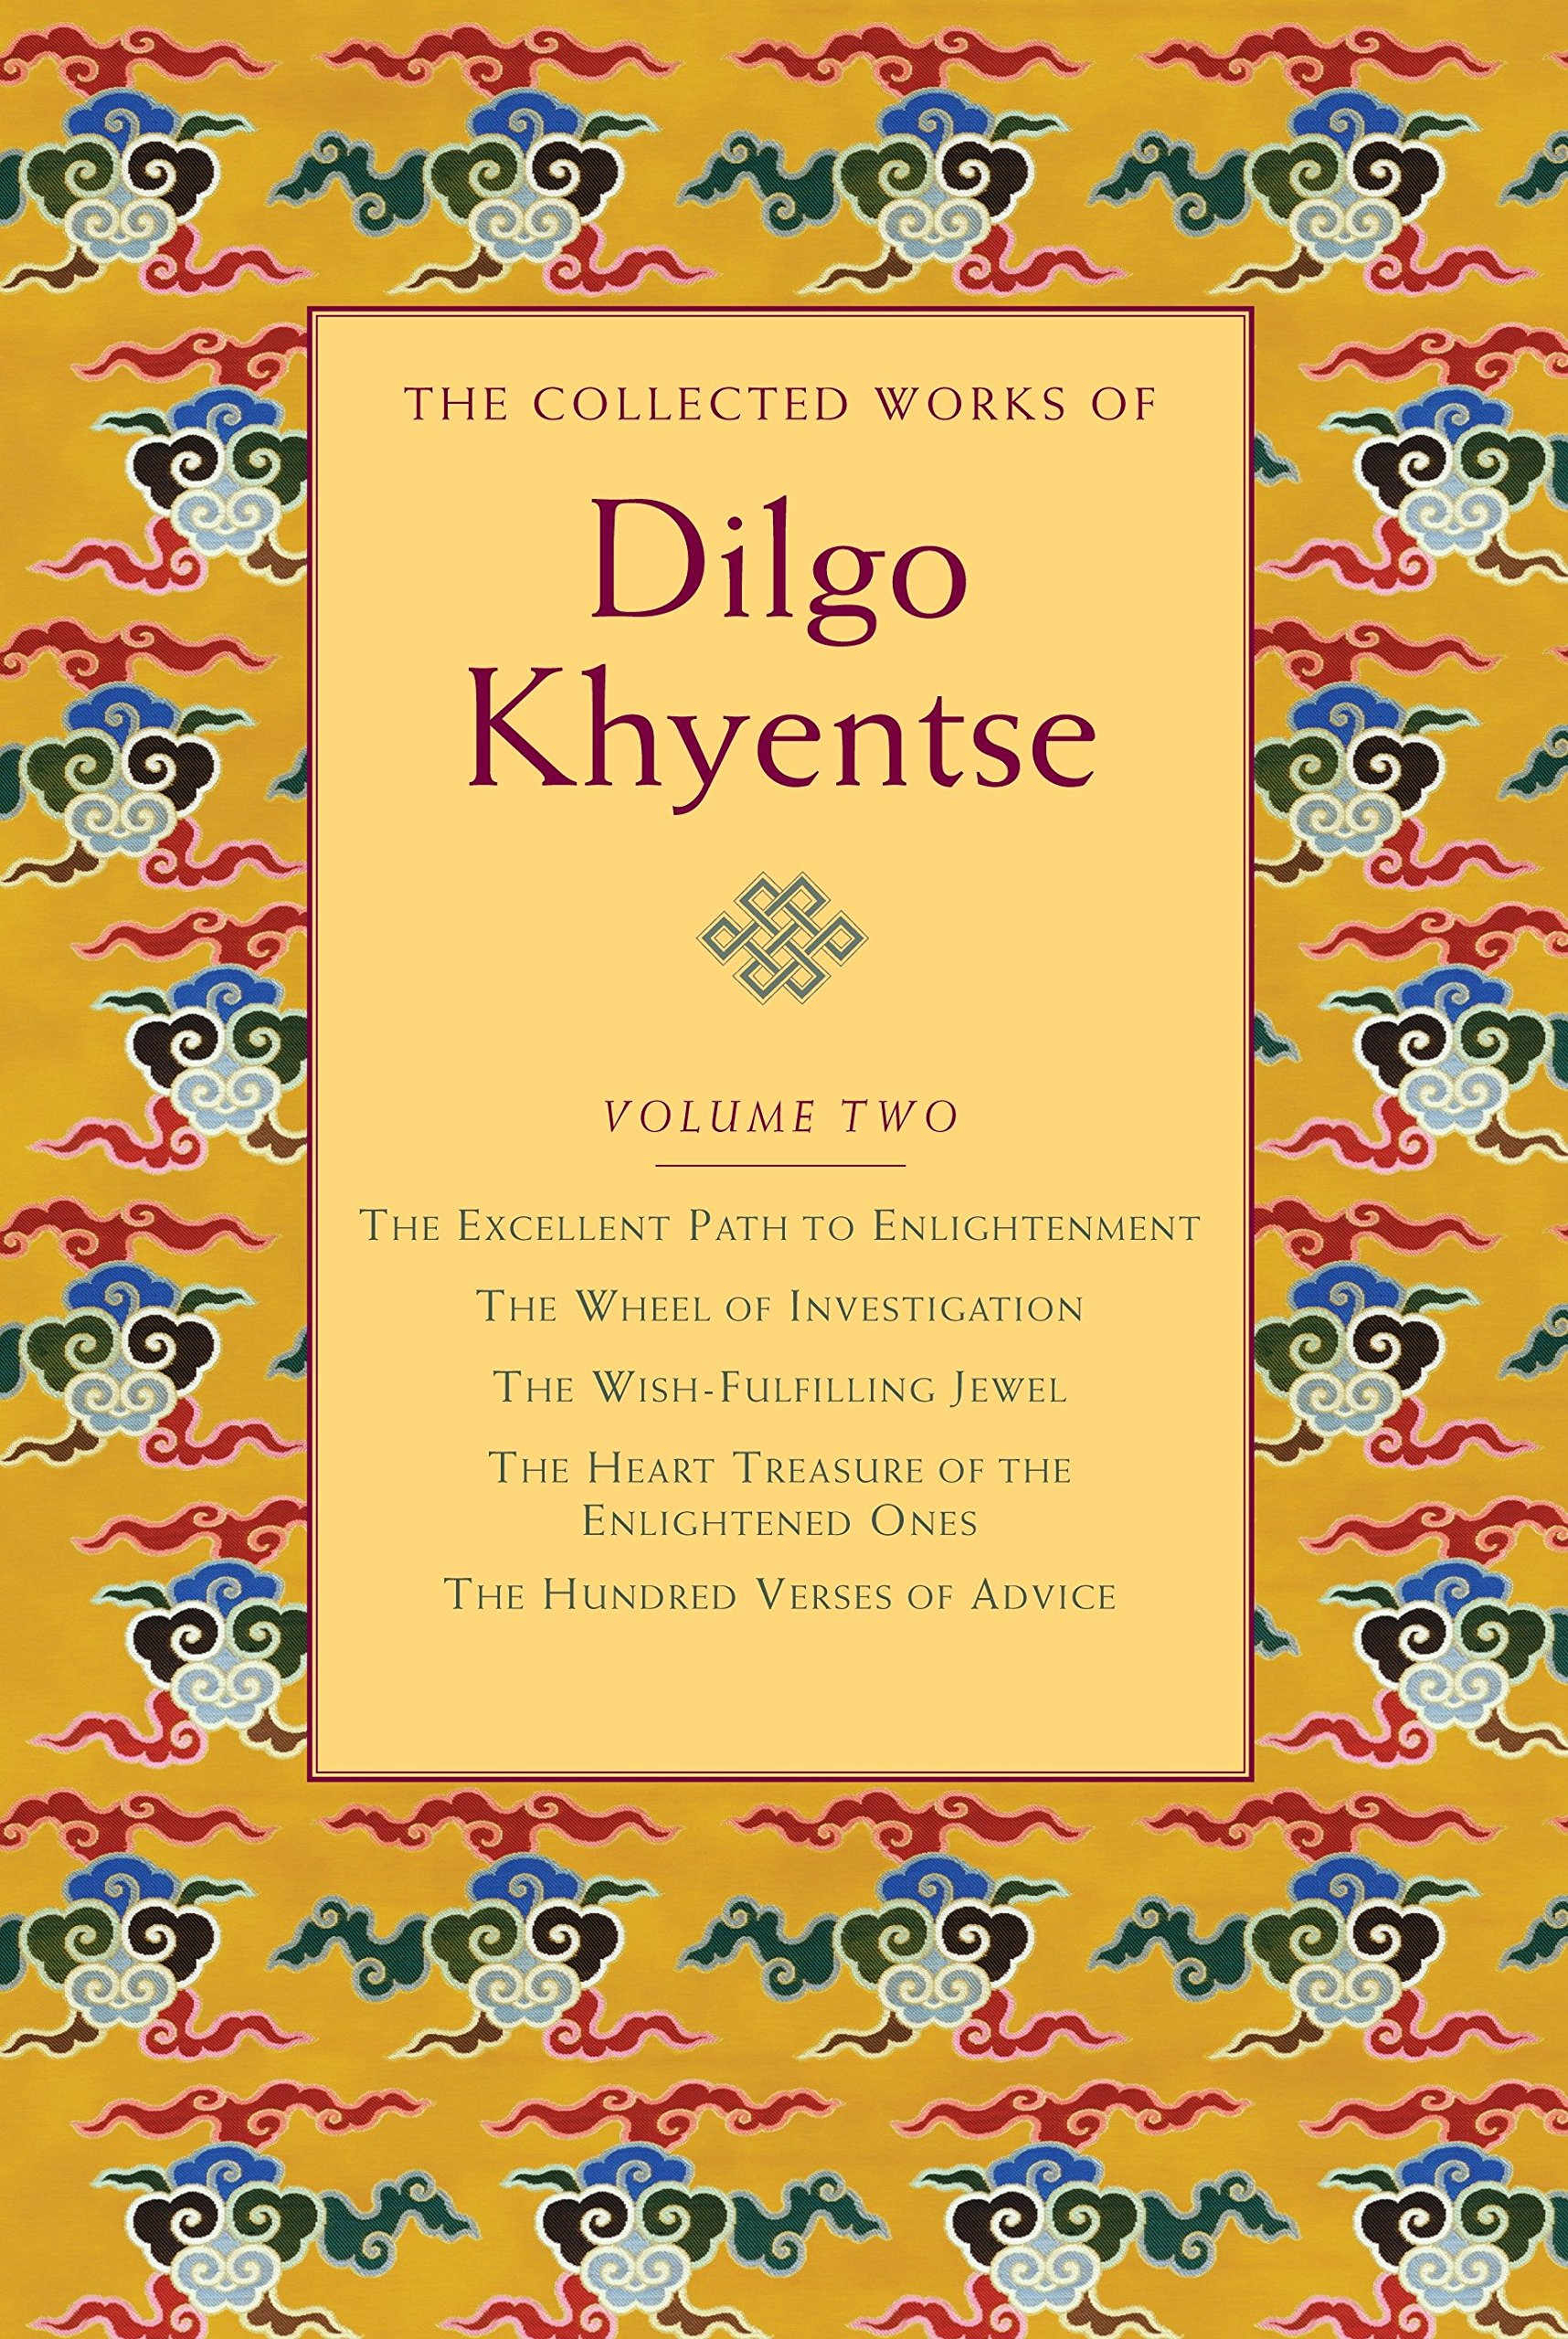 Download The Collected Works of Dilgo Khyentse, Vol. 2: The Excellent Path to Enlightenment; The Wheel of Investigation; The Wish-Fulfil ling Jewel; The ... the Enlightened Ones; Hundred Verses of Advic pdf